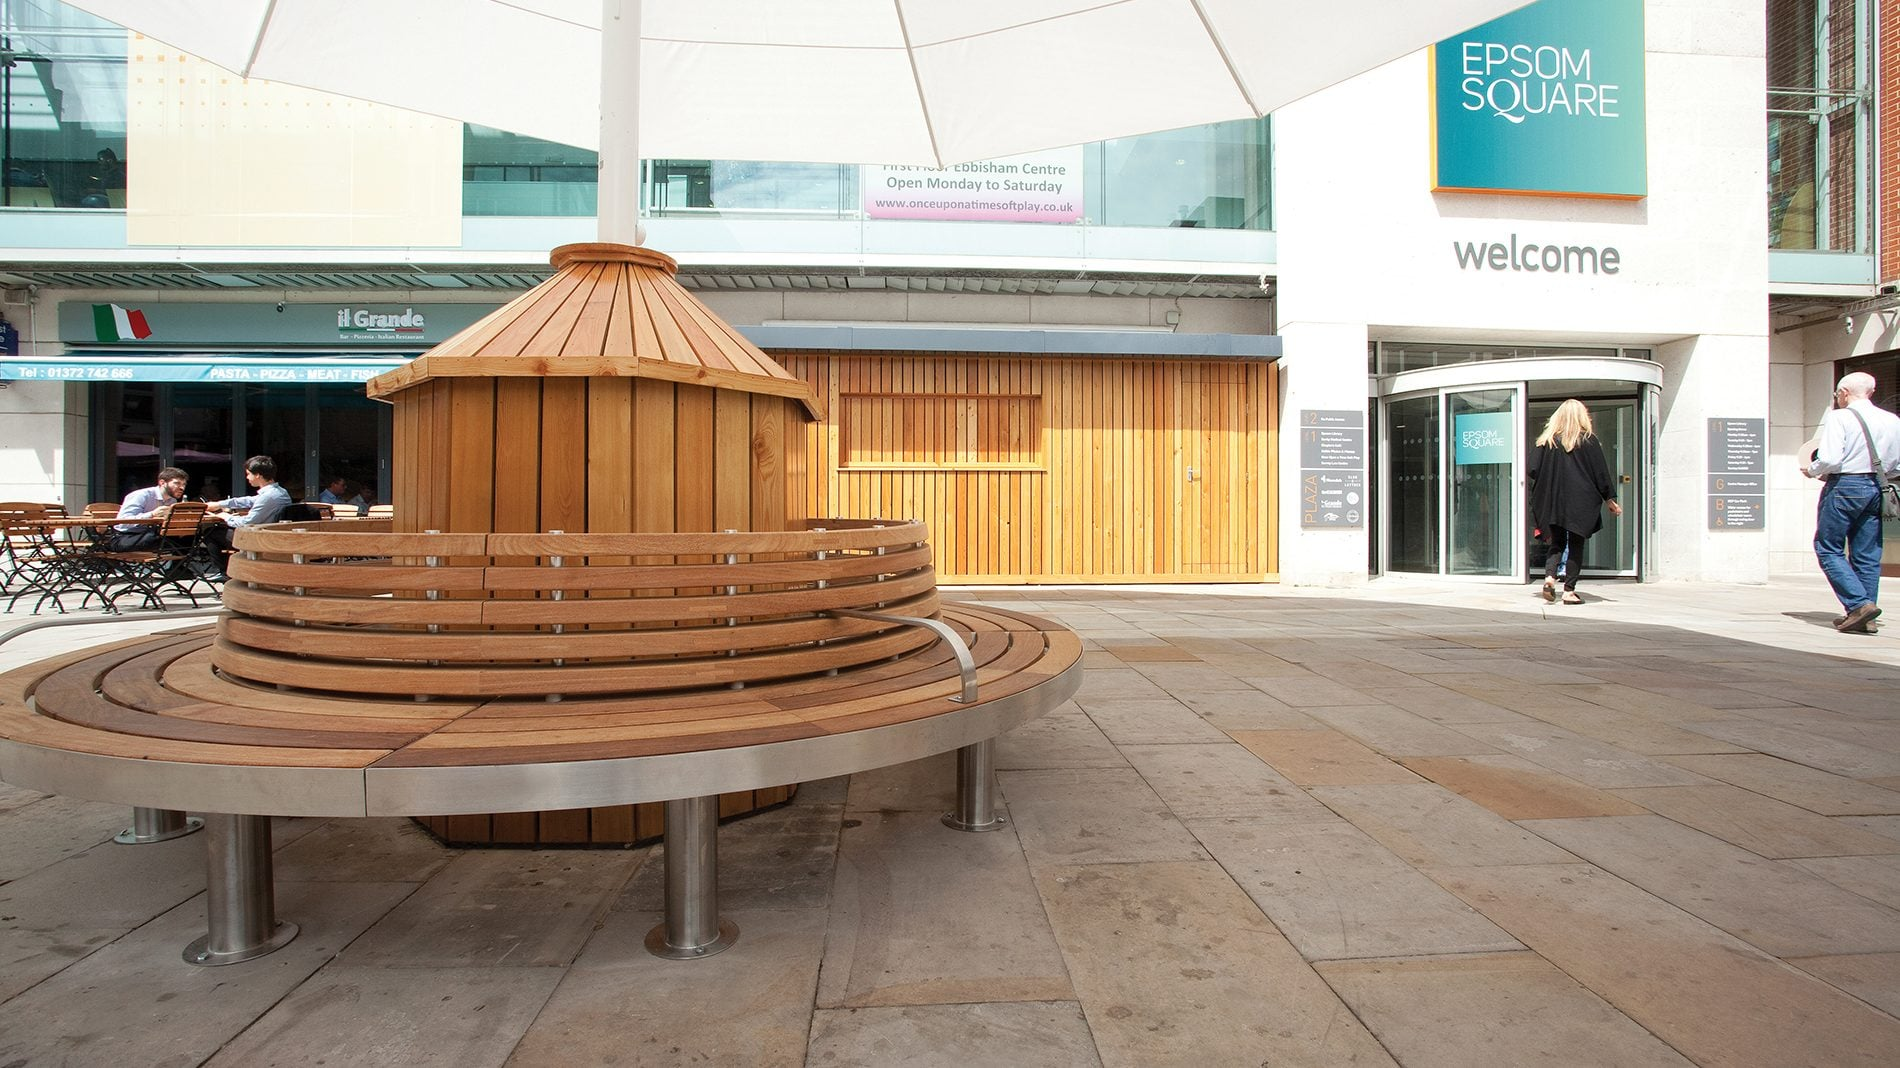 Epsom Square courtyard entrance with seating area